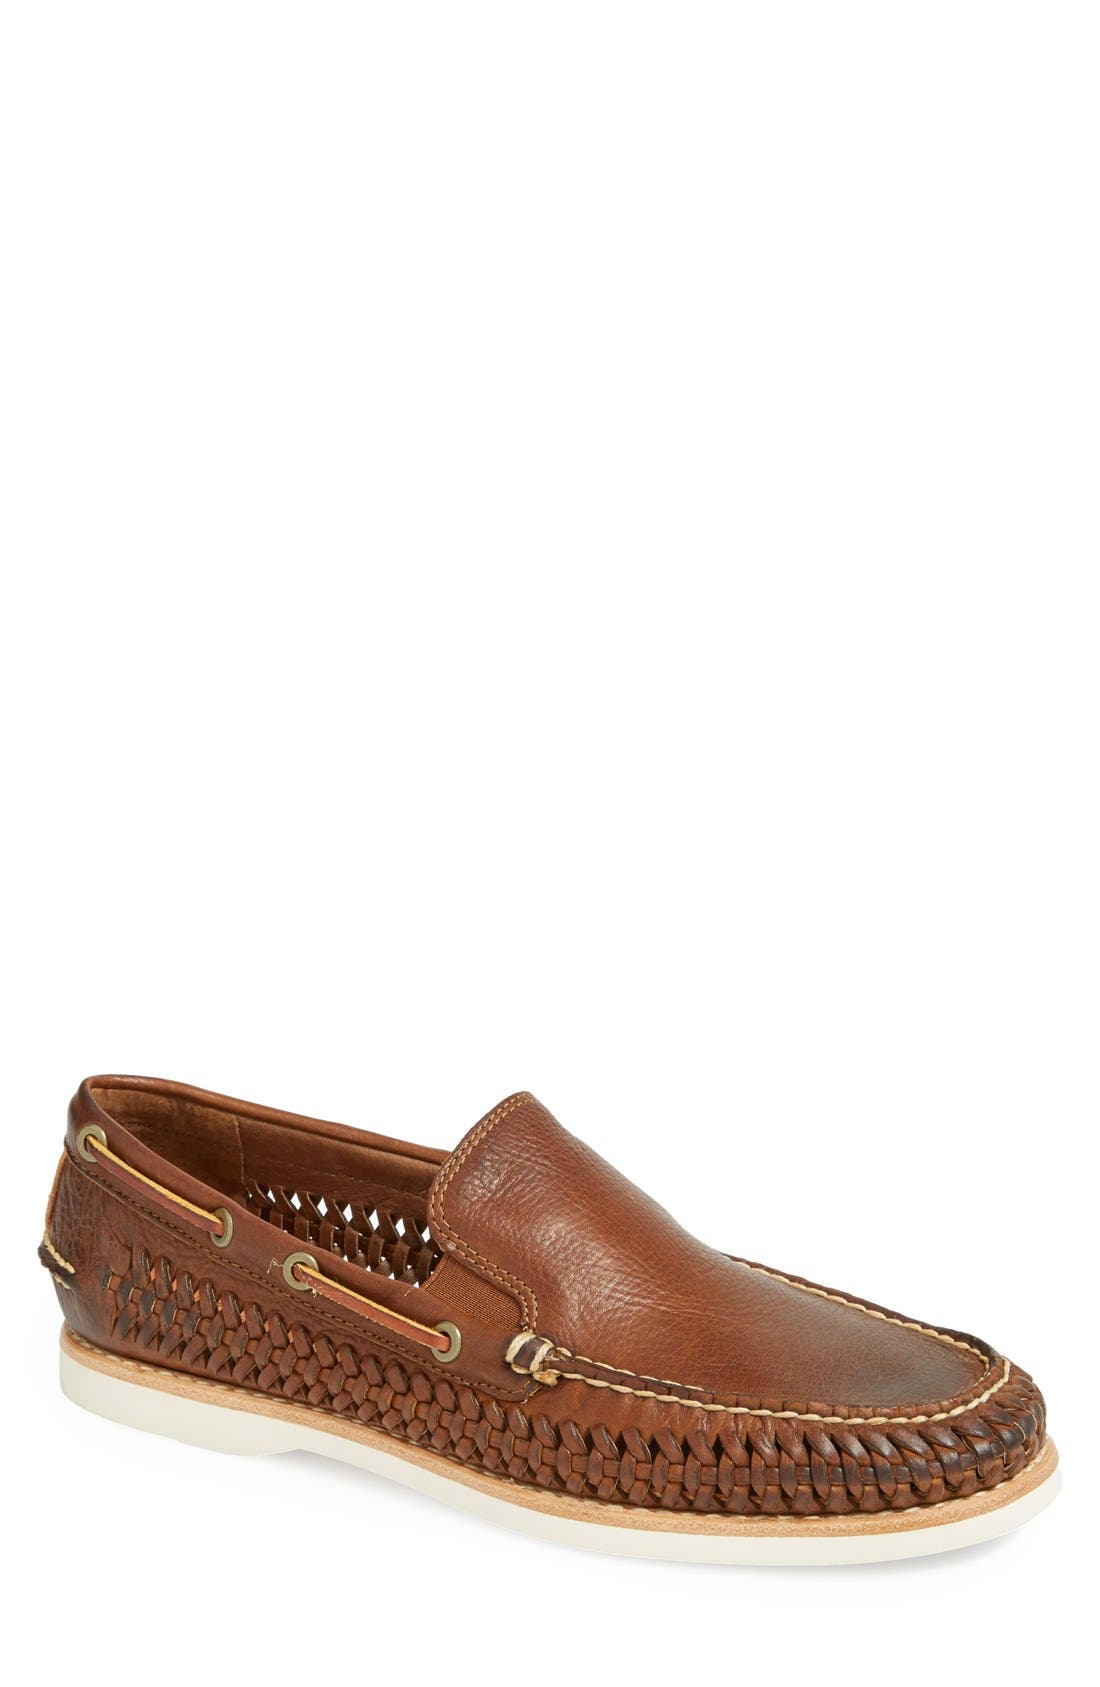 Alternate Image 1 Selected - Frye 'Sully' Woven Boat Shoe